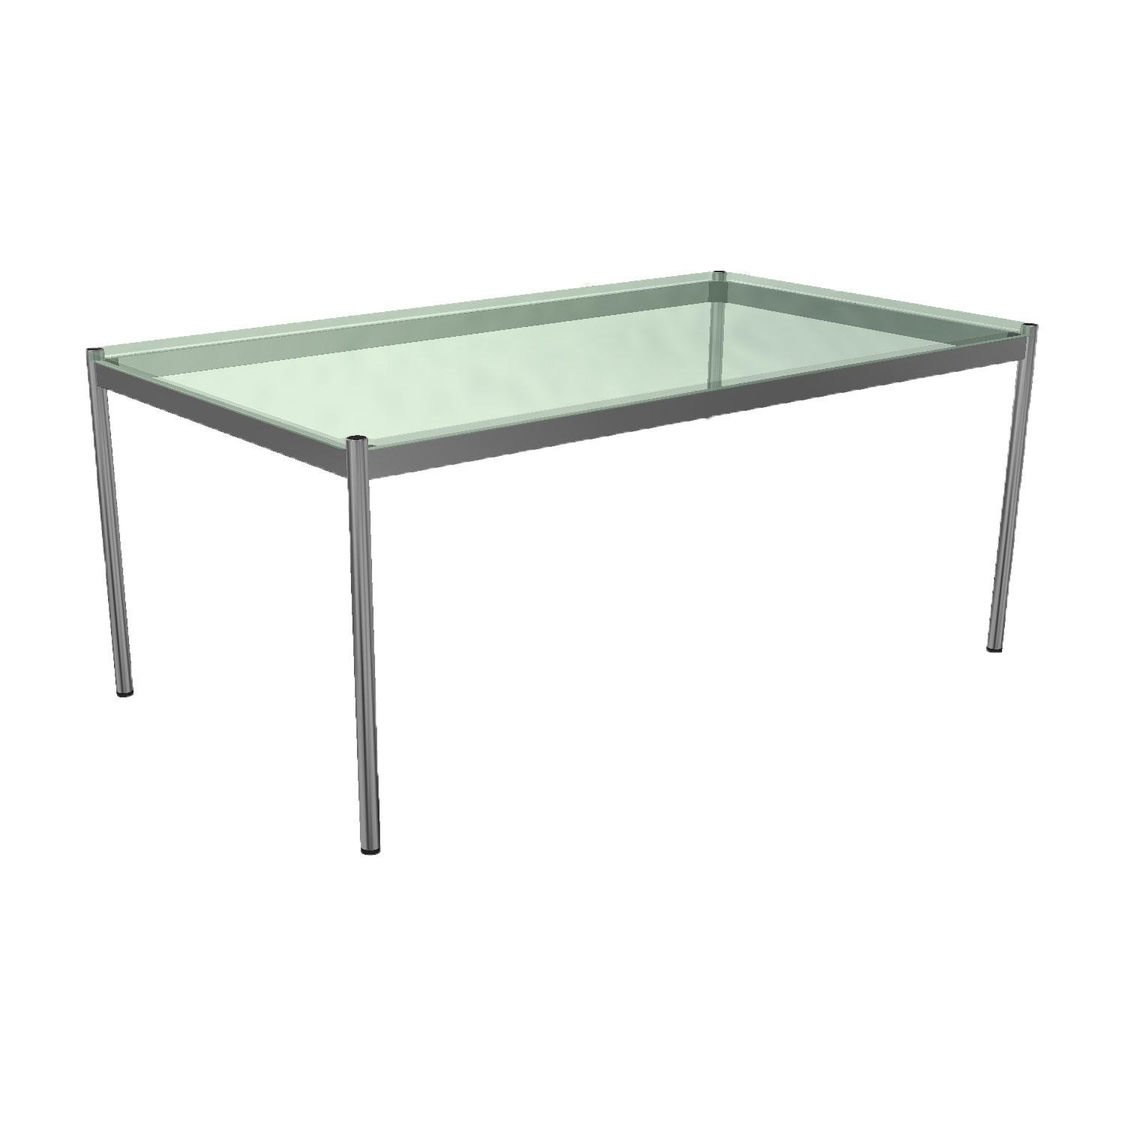 road furniture collections shiro glass tables by sku stocked coffee table products avenue kuramata designer